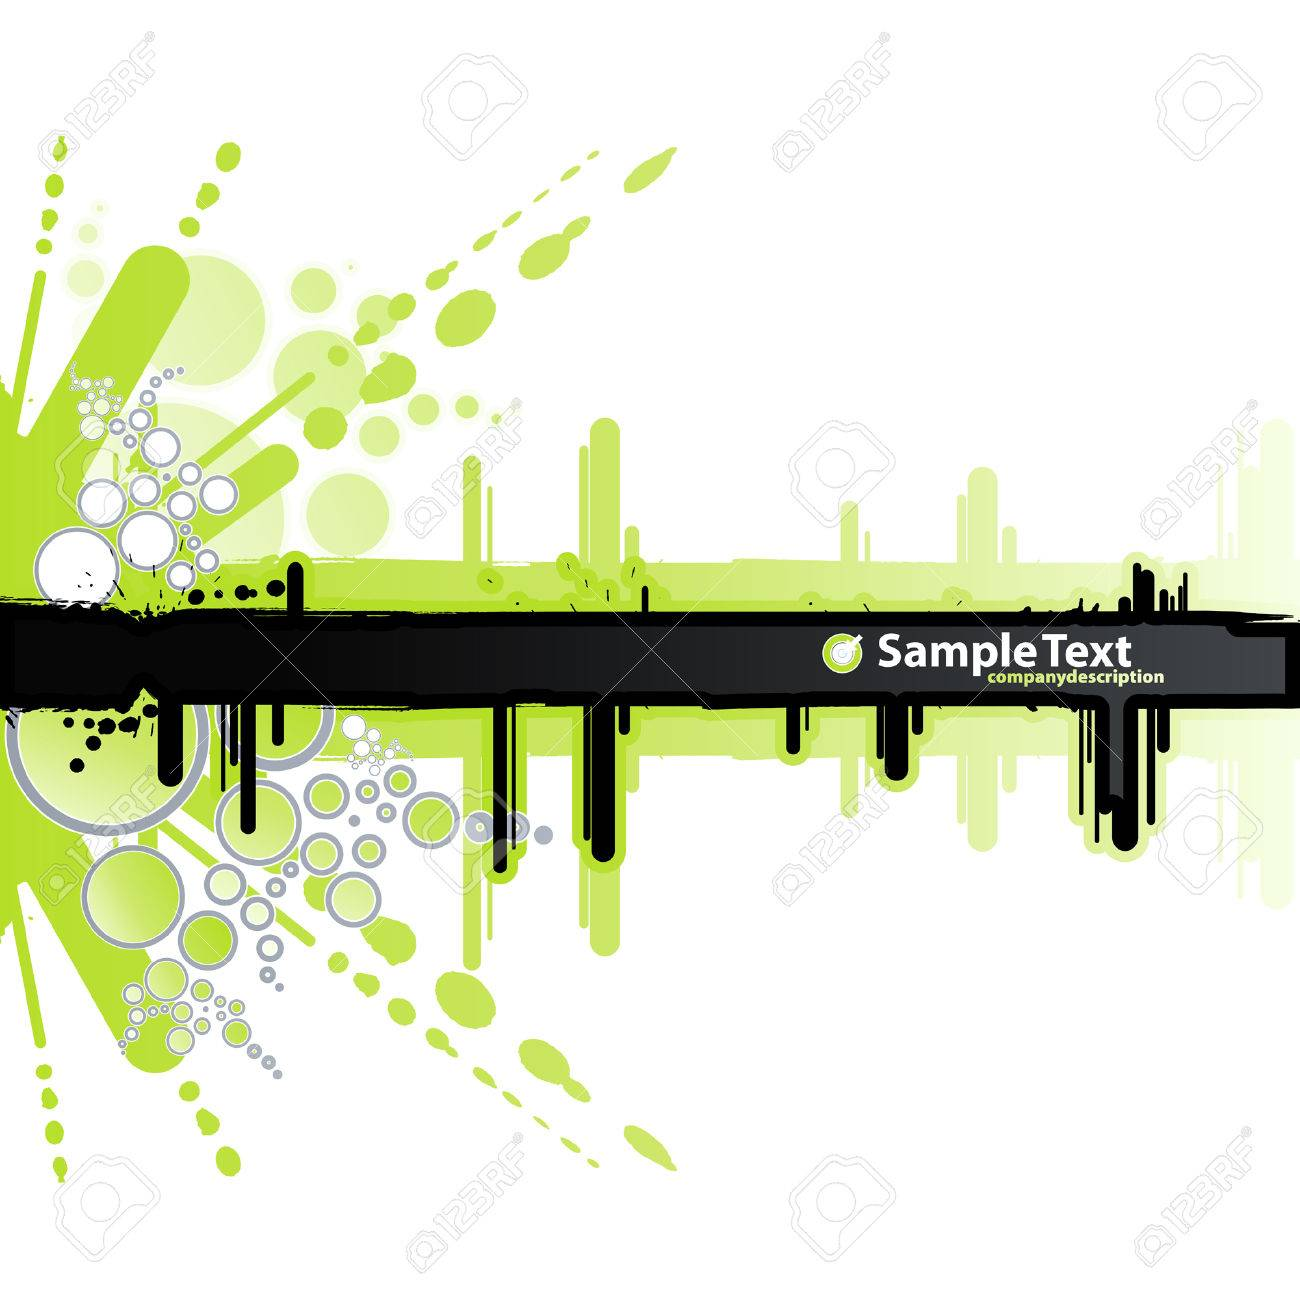 Vector illustration of a grunge and retro green and white background with ink splatter elements, retro circles and drops and a black stripe for custom text. - 3551583